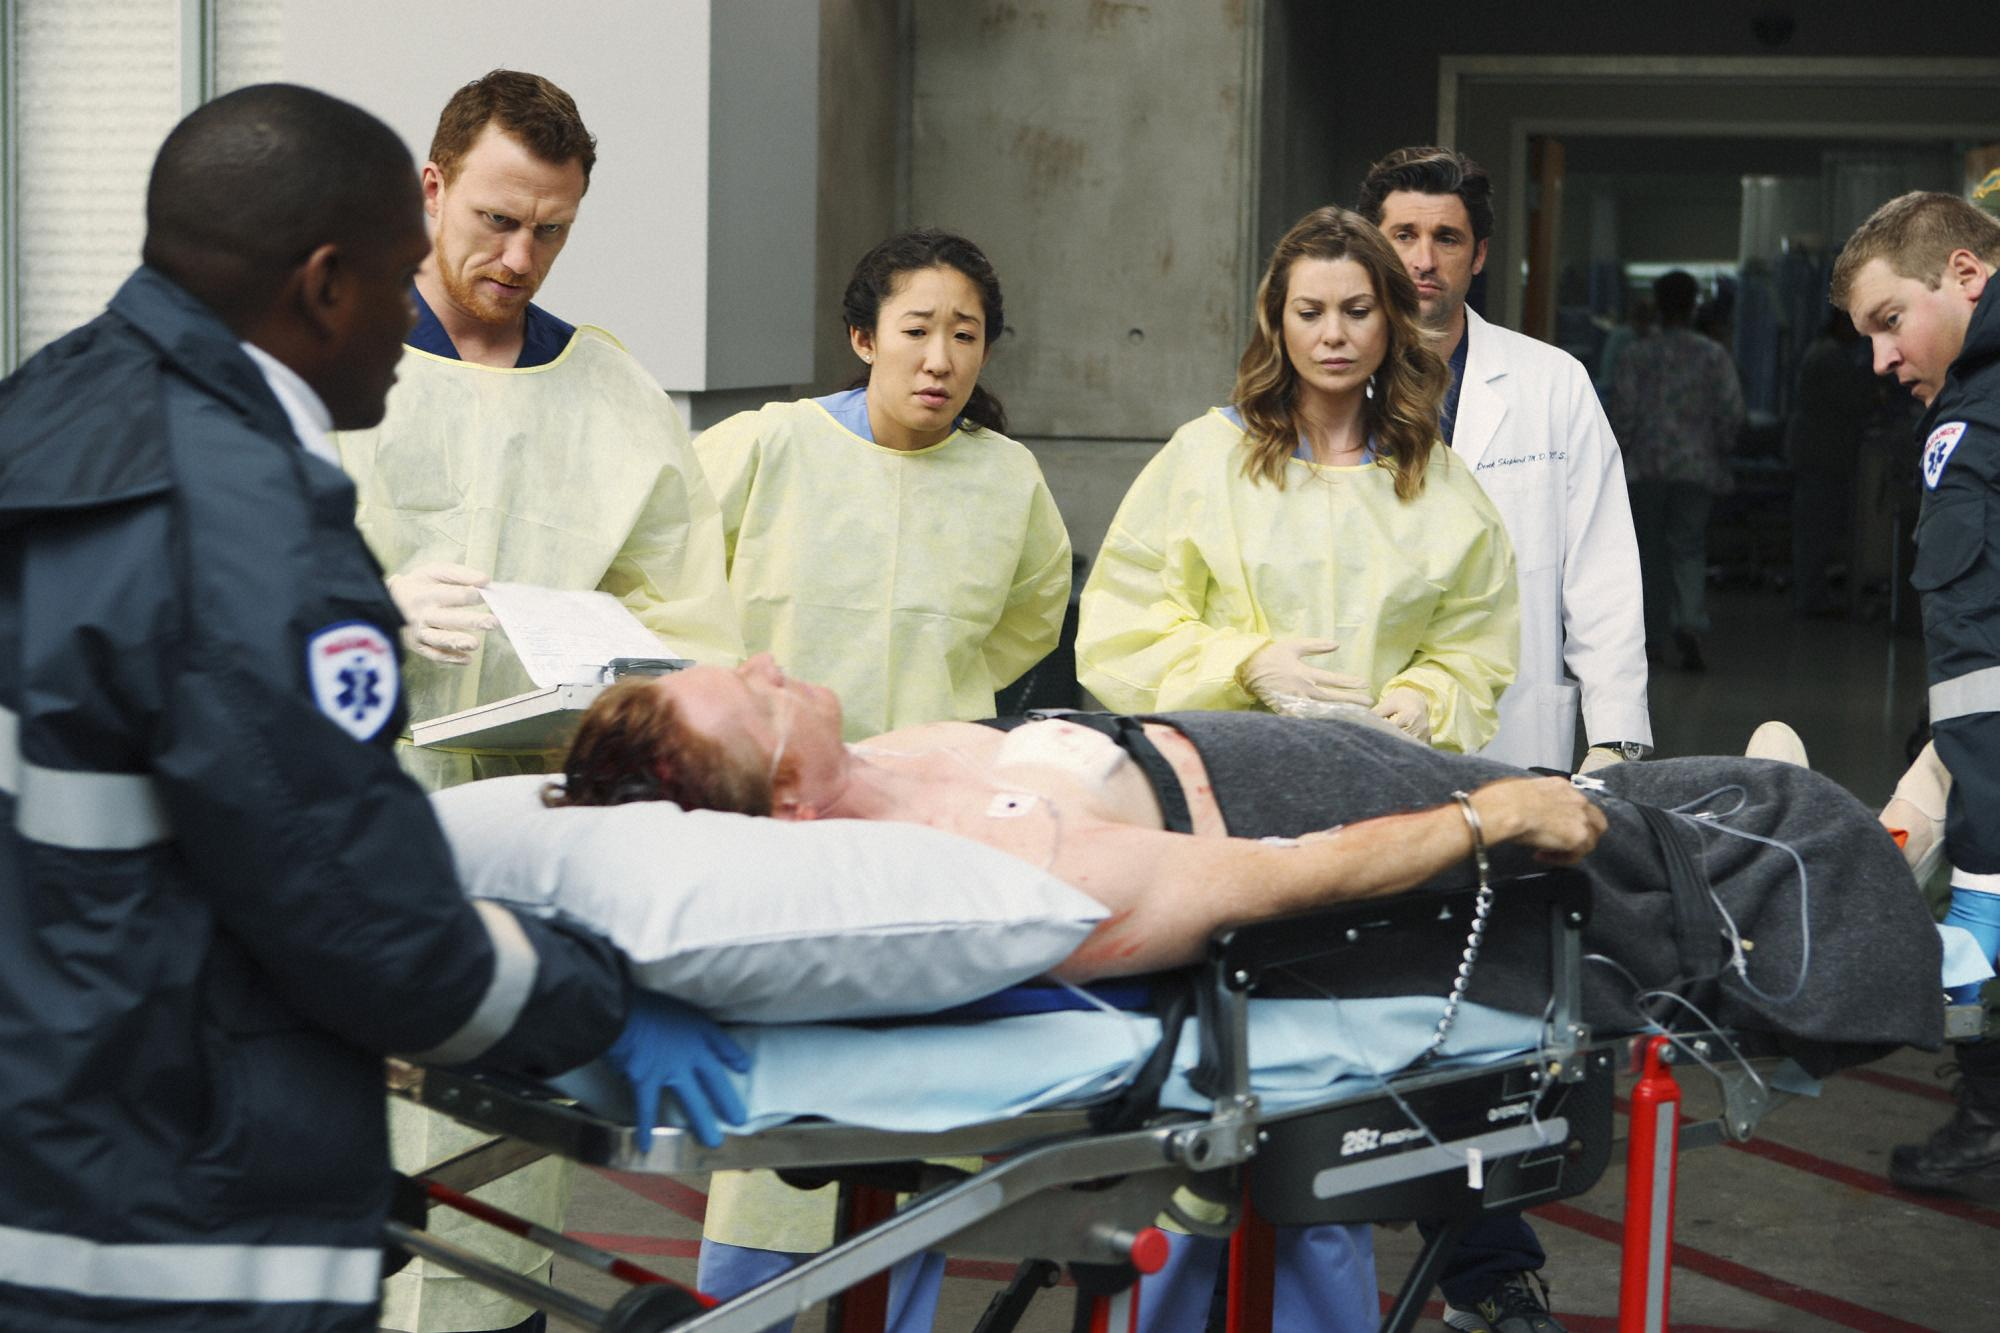 when does callie start dating erica hahn George o'malley is a fictional character from  o'malley begins avoiding her and starts dating orthopaedic surgeon callie  instead contacting erica hahn,.